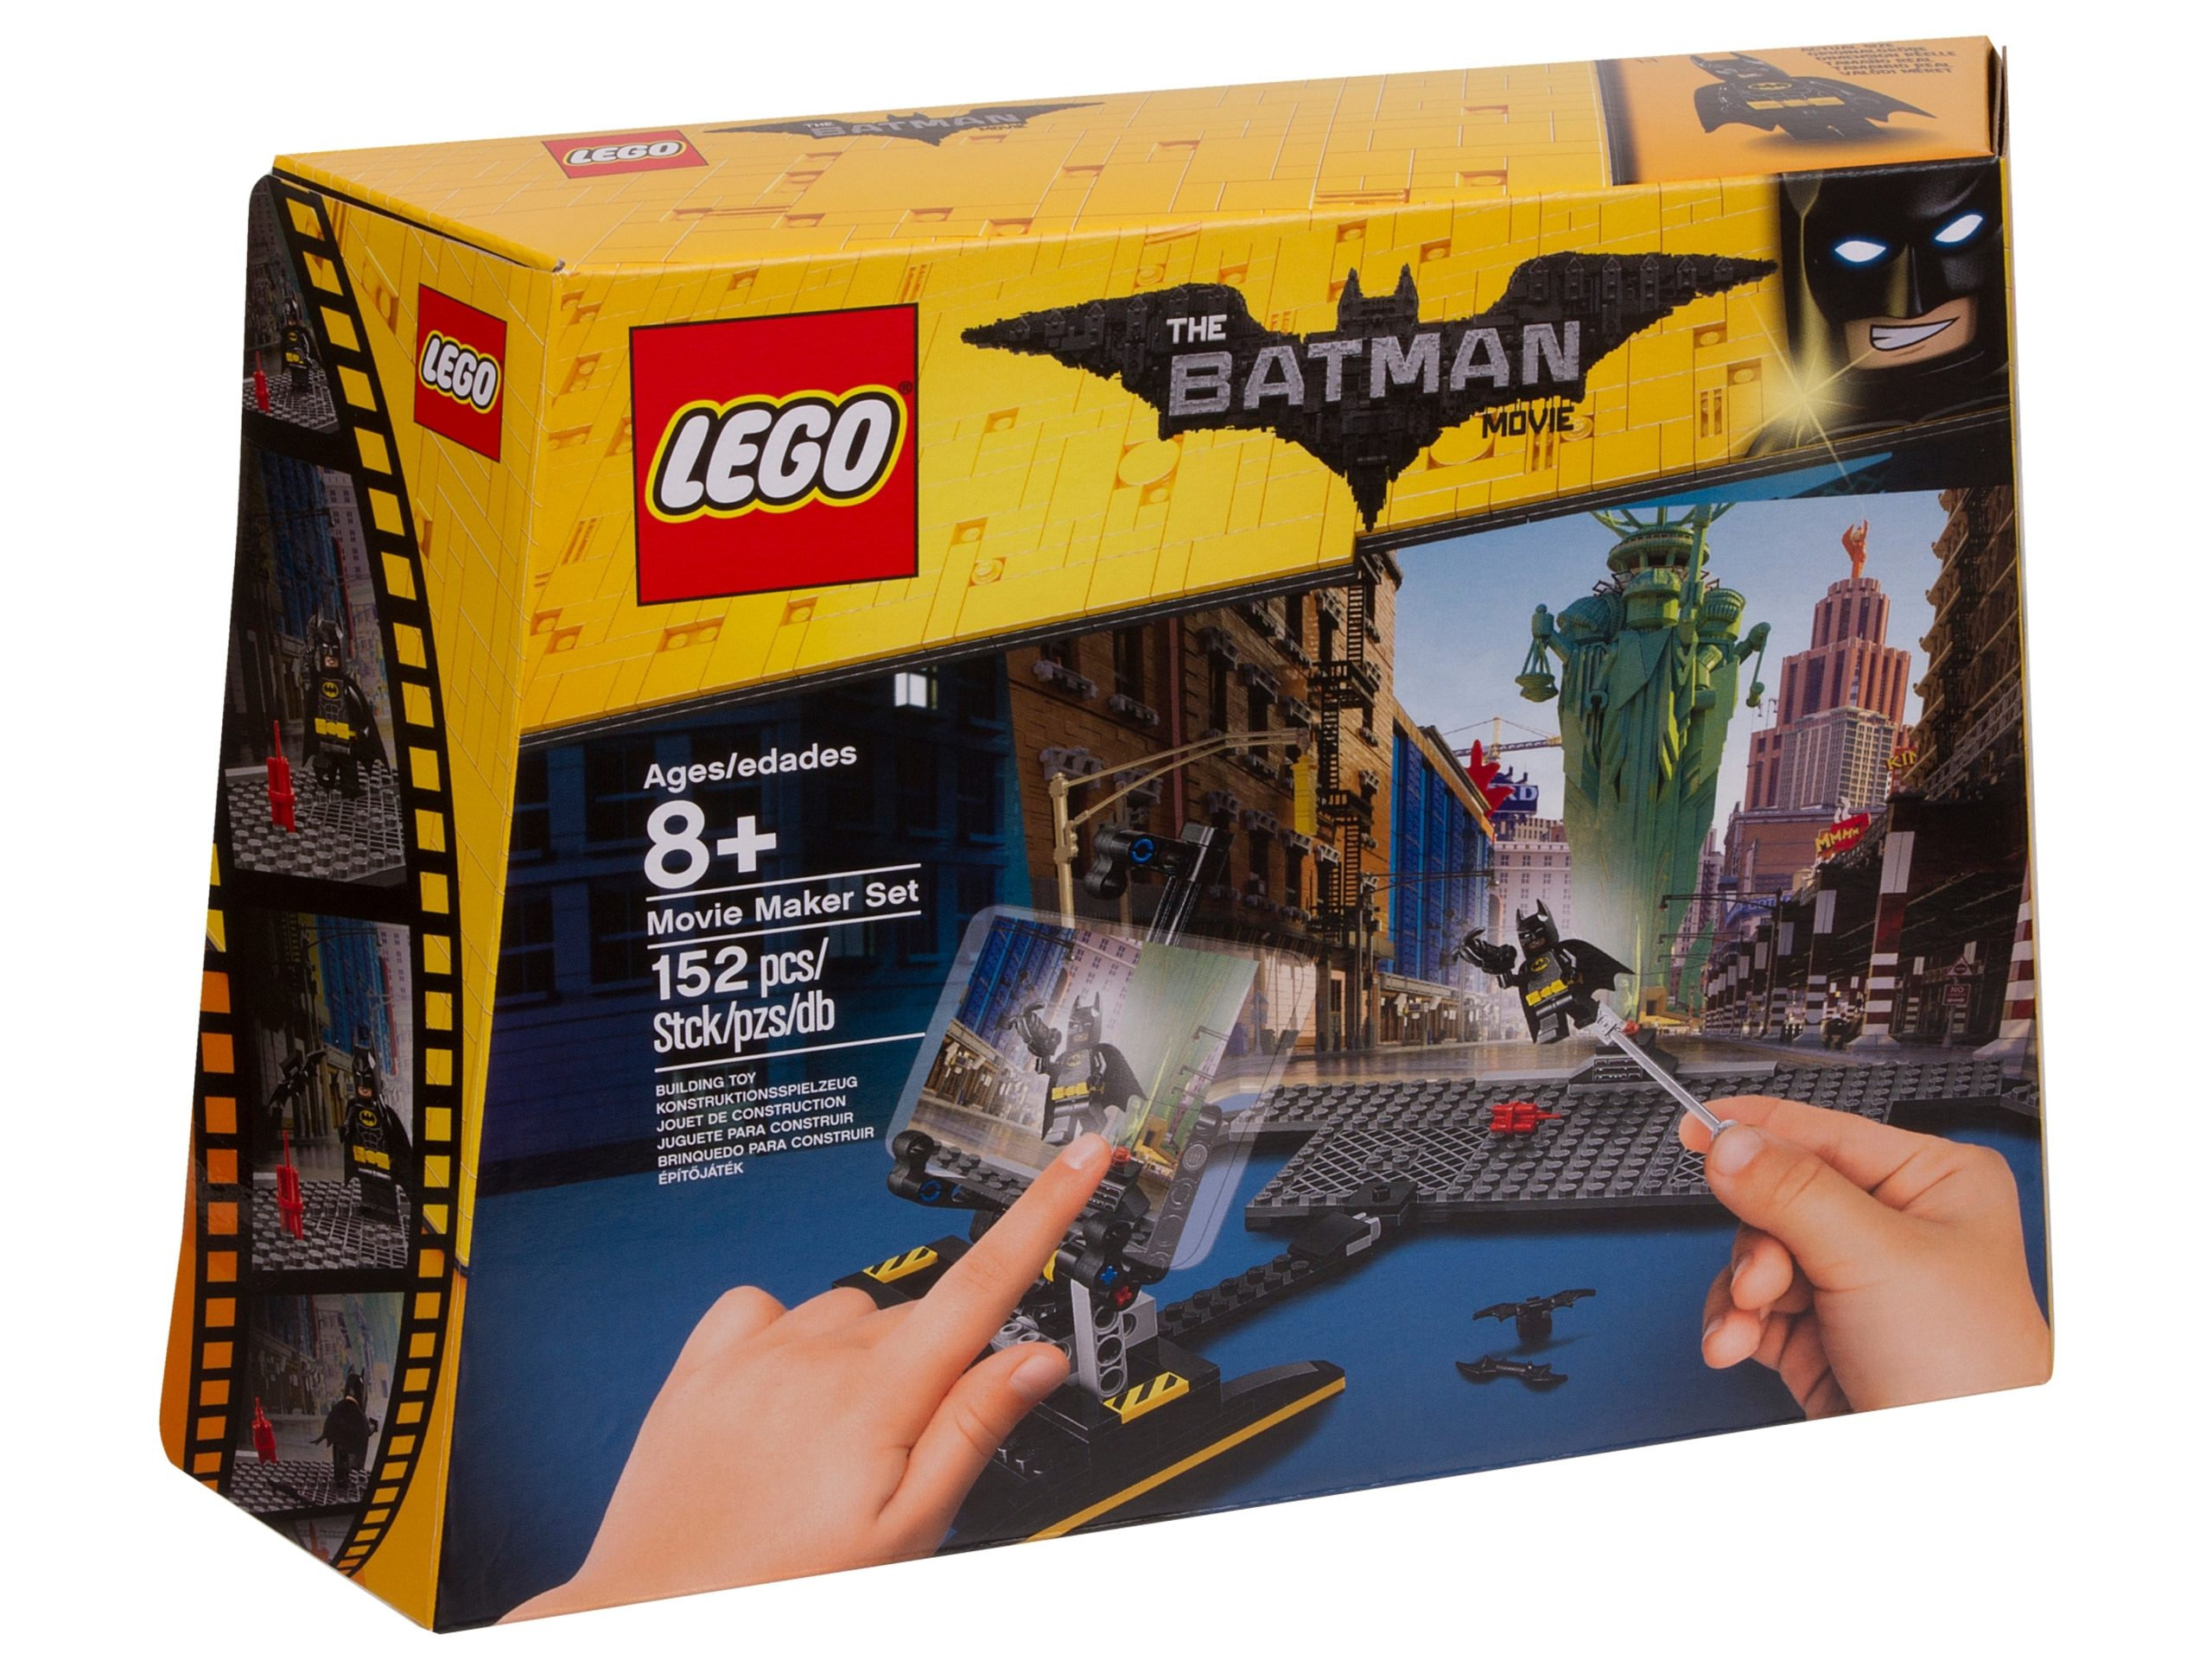 lego 853650 batman movie batman movie maker set scaled